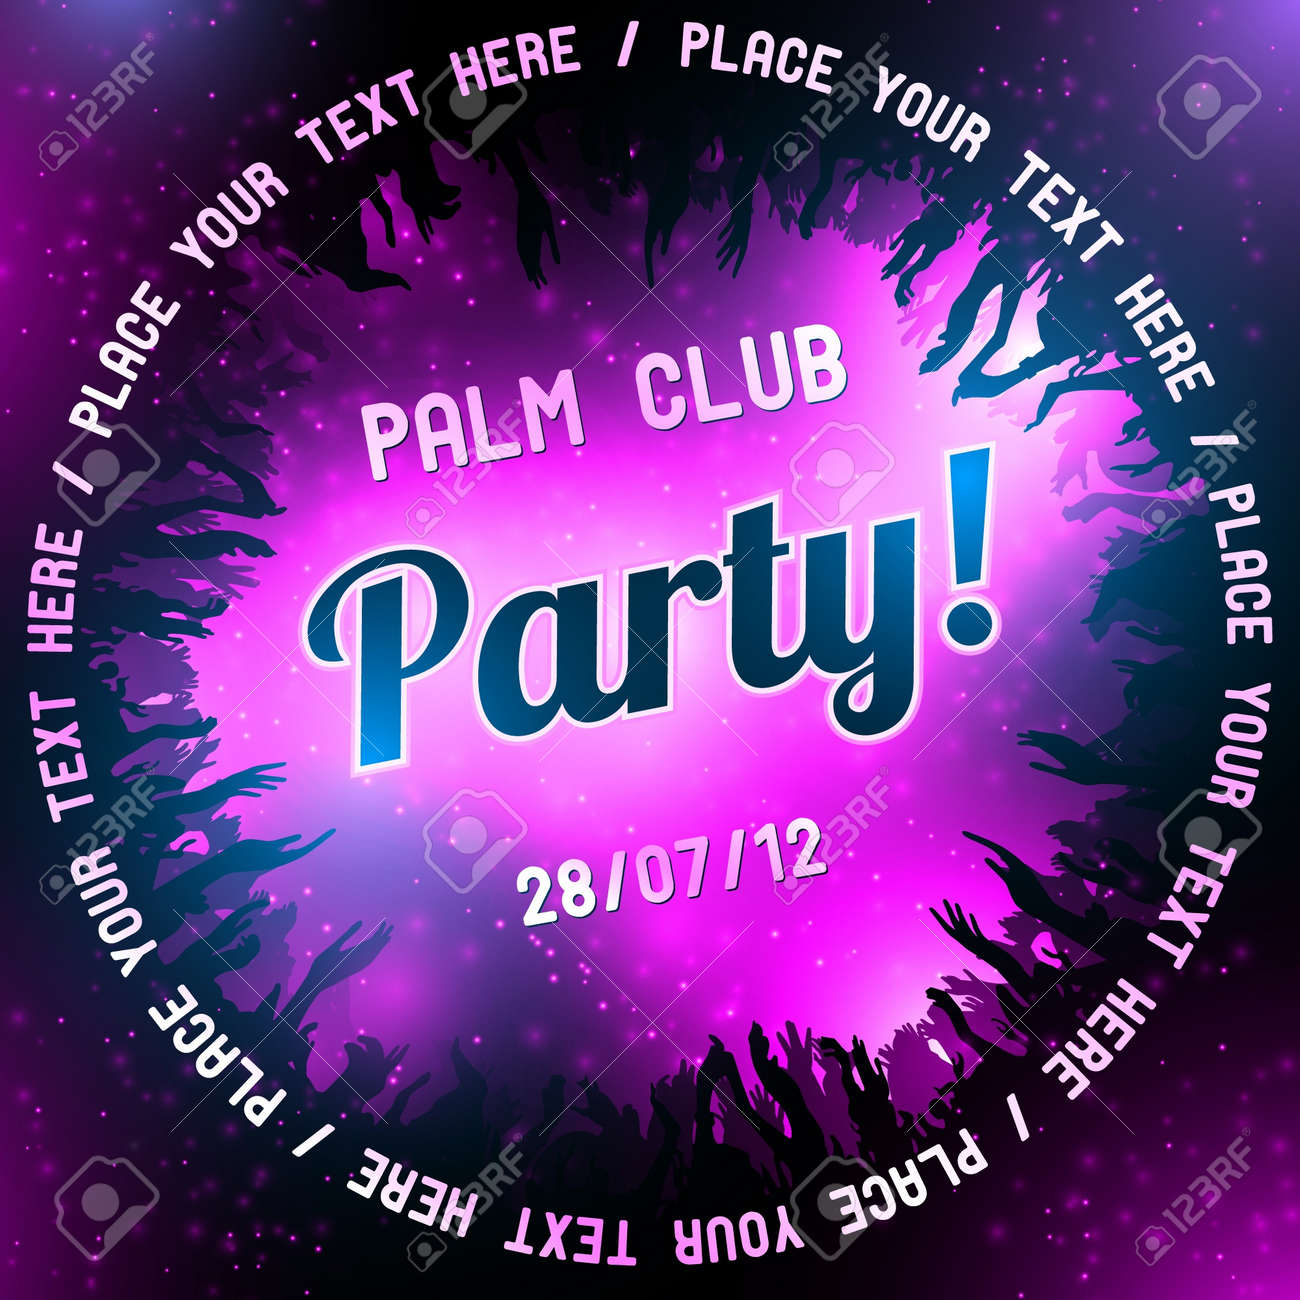 Pink Party flyer vector template - 14580913